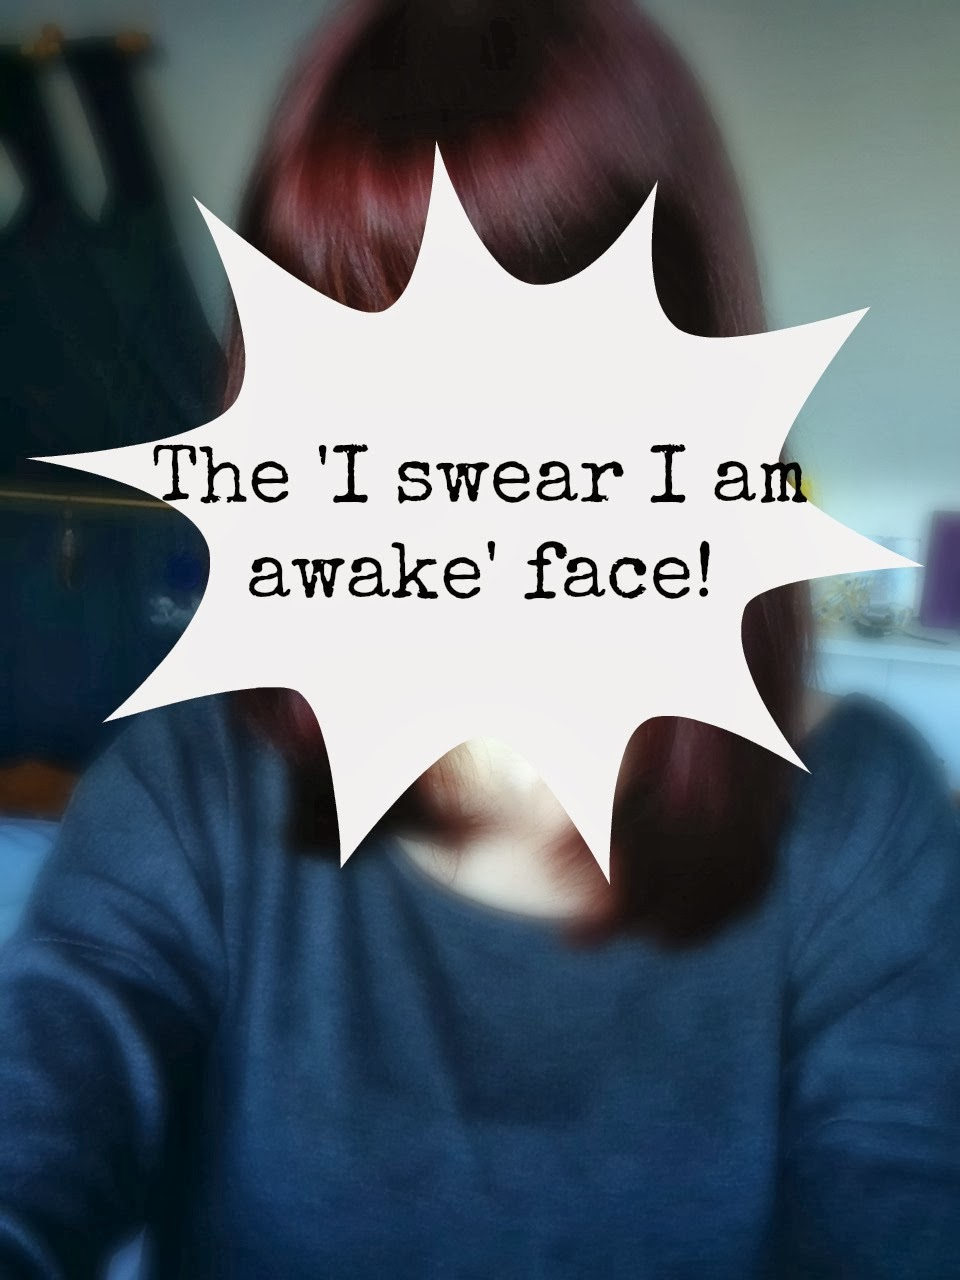 Beauty – 'I swear I am awake!'